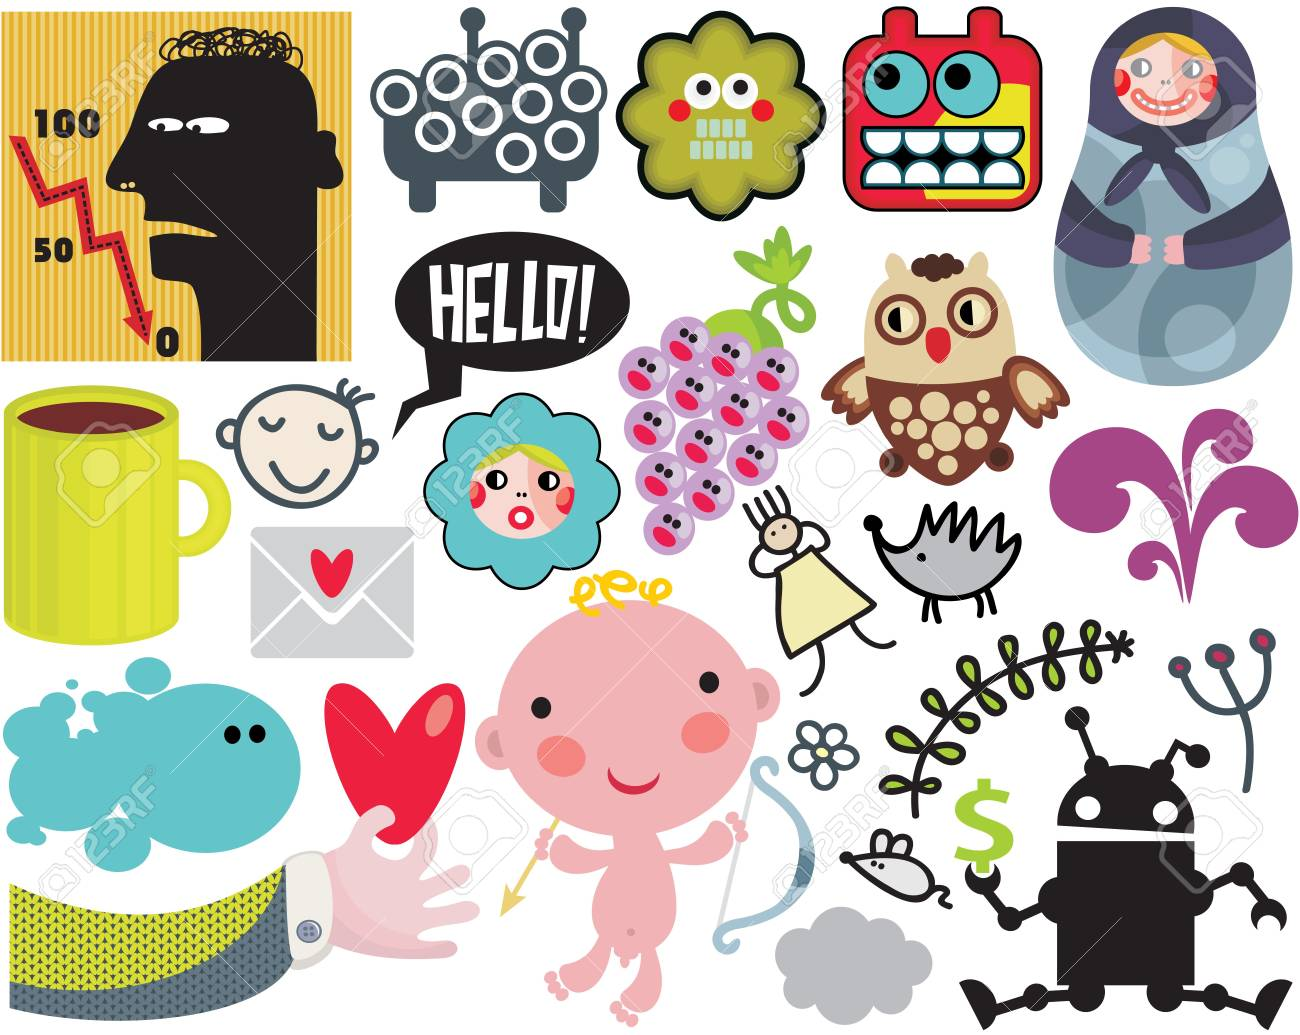 Mix of different images and icons. vol.38 Stock Vector - 12072198